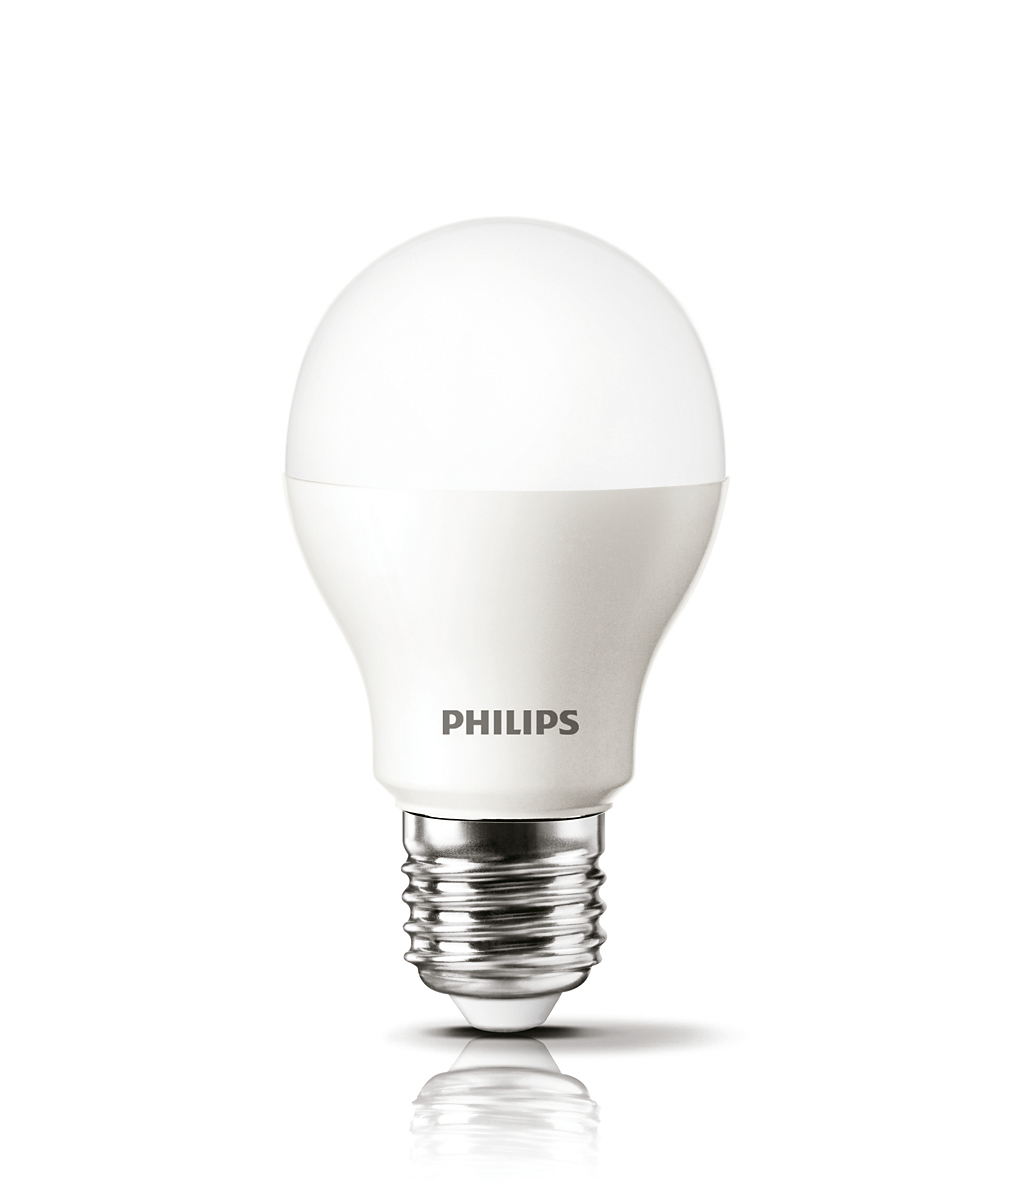 Philips Corepro Lampes Led Bulbs Ledbulb f76gby